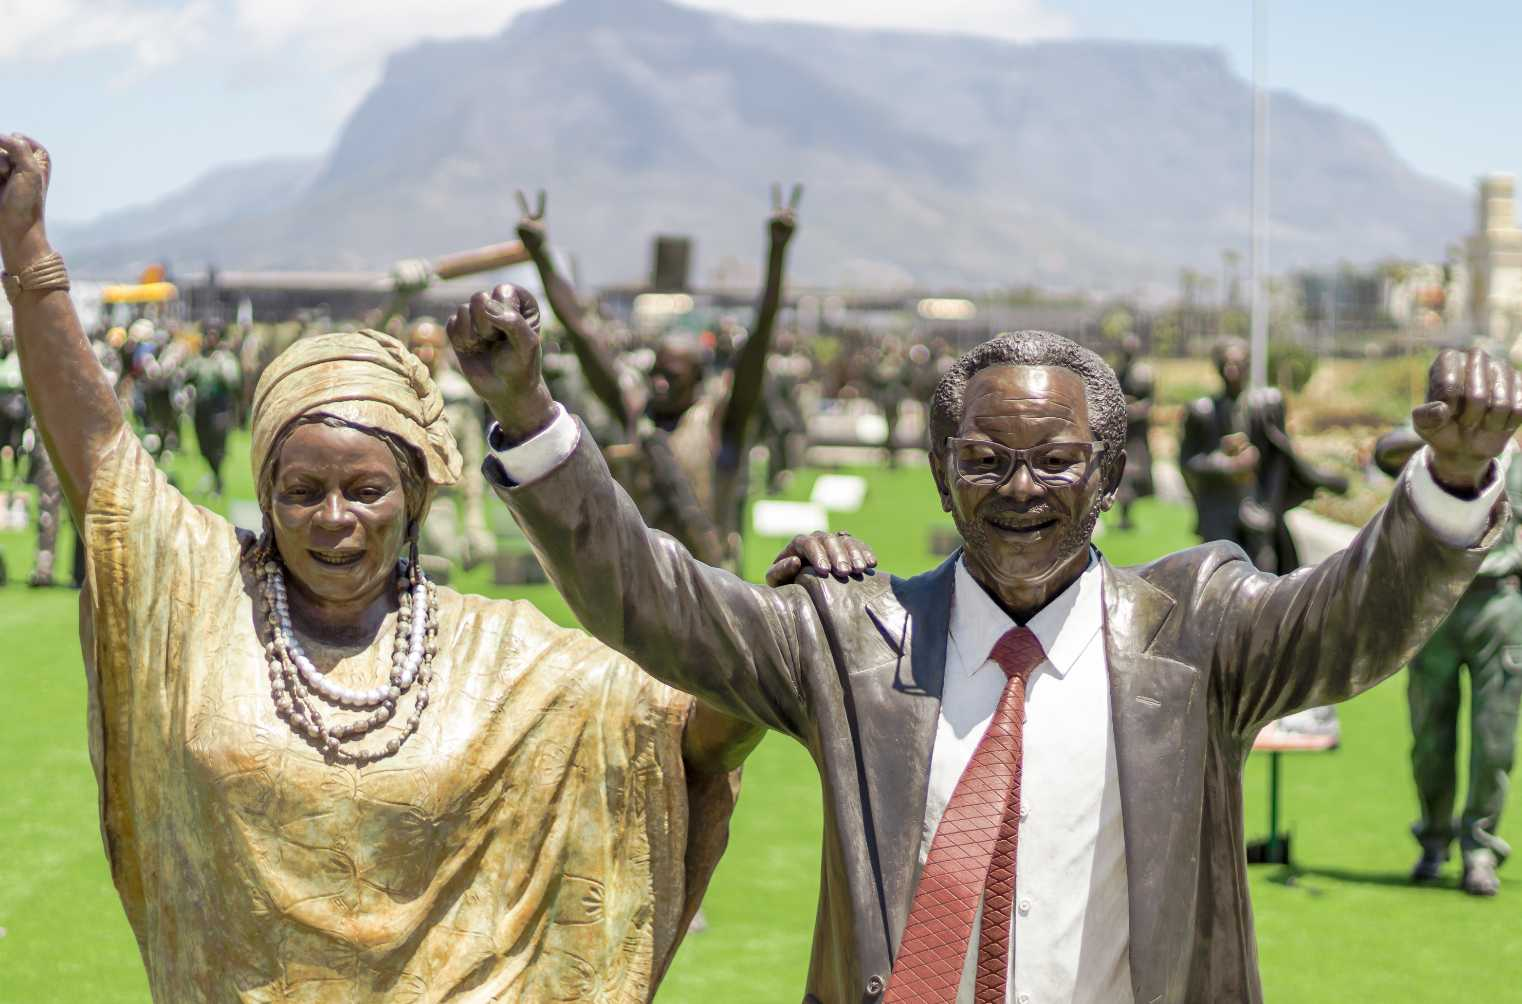 Statues of adelaide and oliver reginald tambo